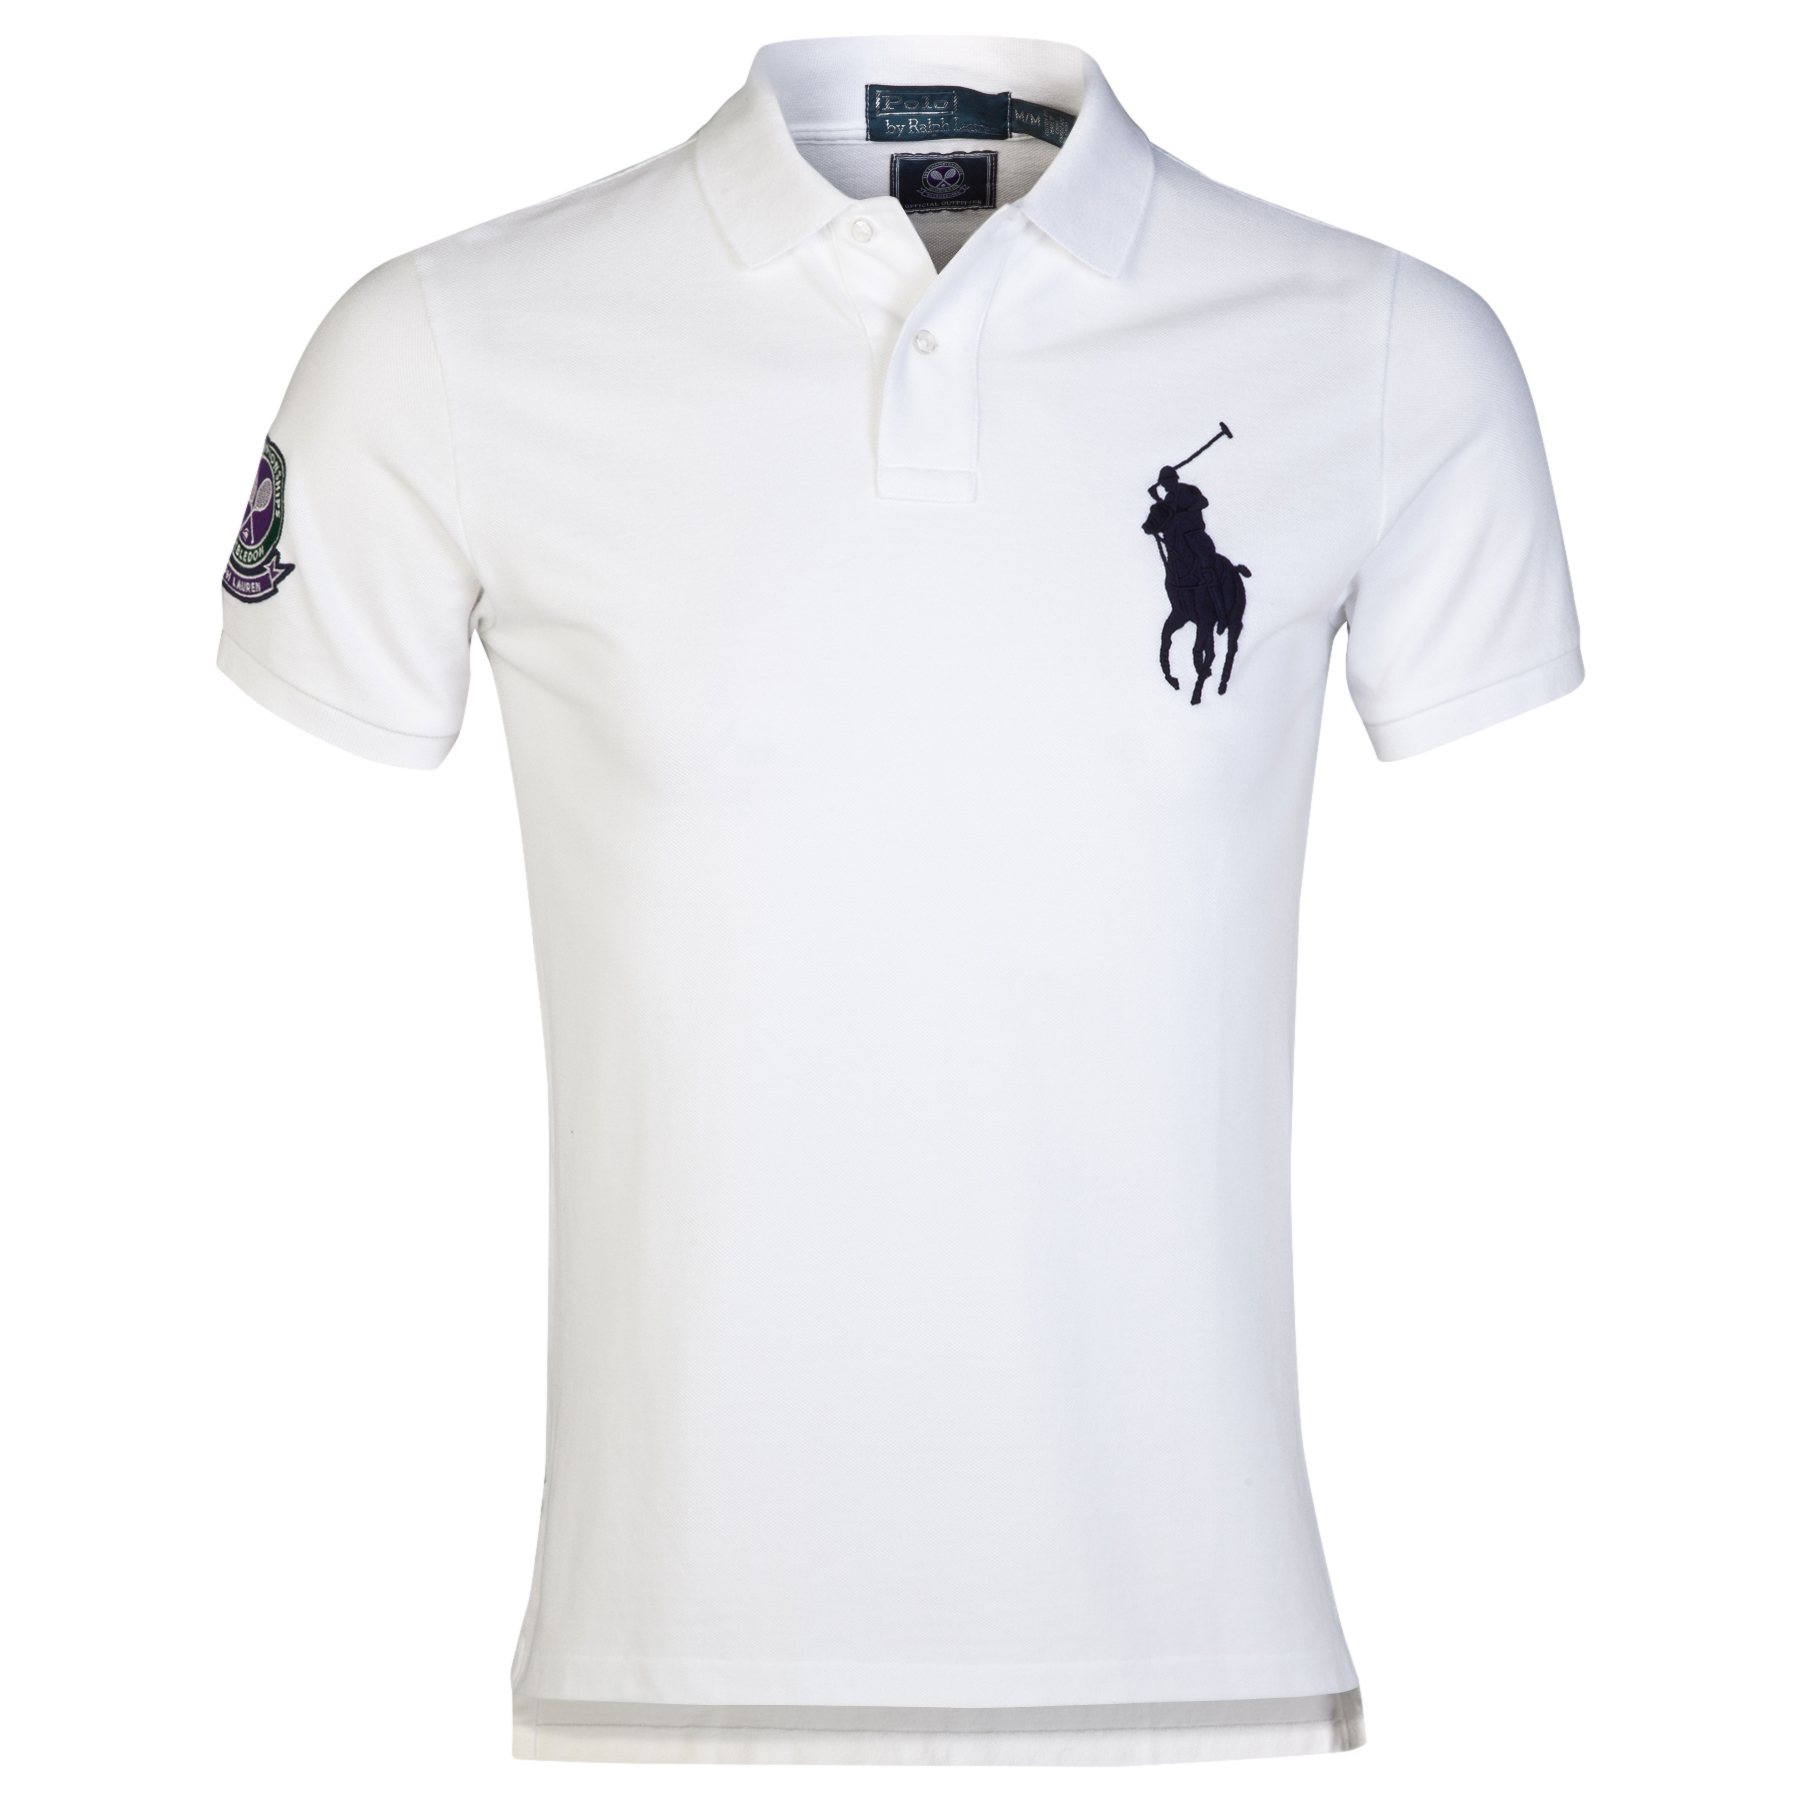 Wimbledon Polo Ralph Lauren Custom Fit Basic Mesh Polo White